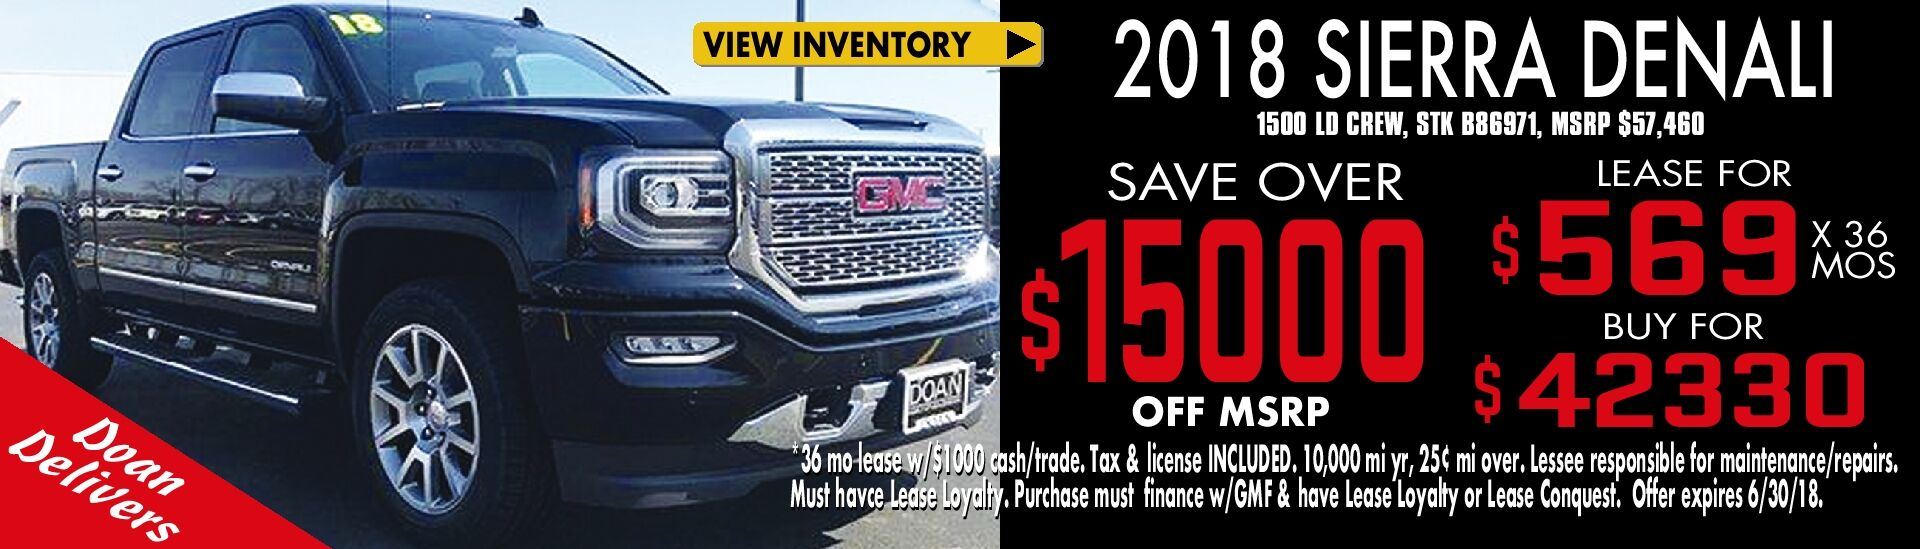 Save on Sierra Denali!